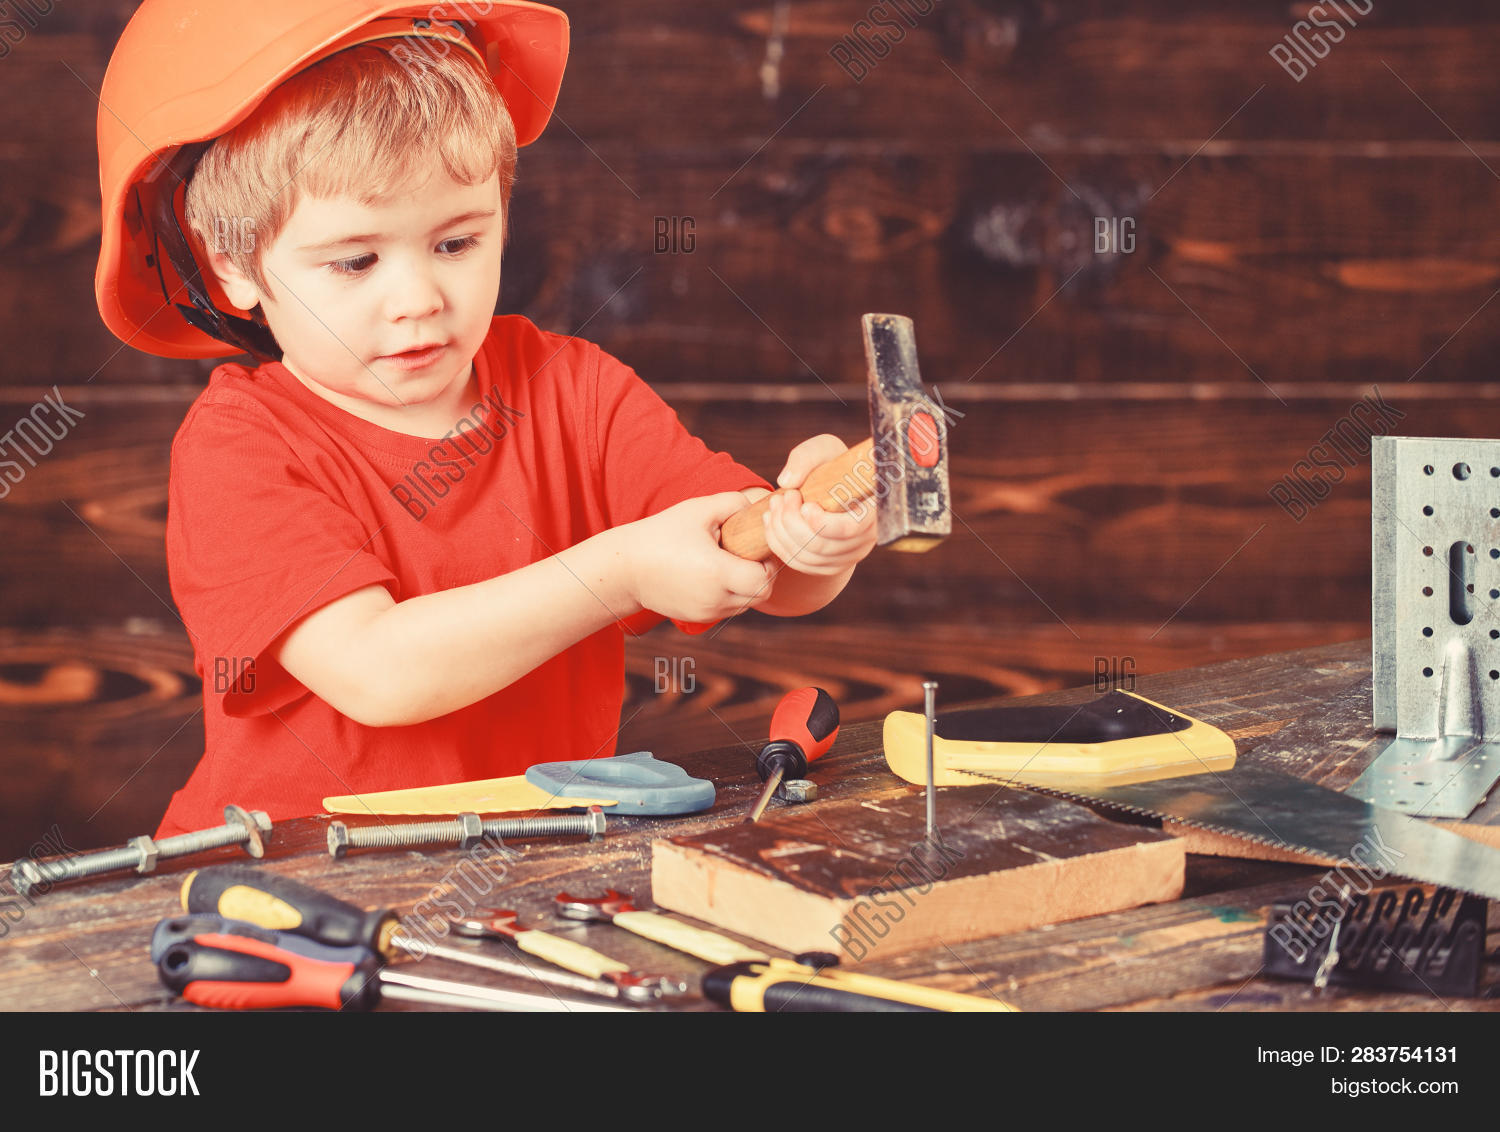 Handcrafting Concept. Toddler On Busy Face Plays With Hammer Tool At Home In Workshop. Kid Boy Play